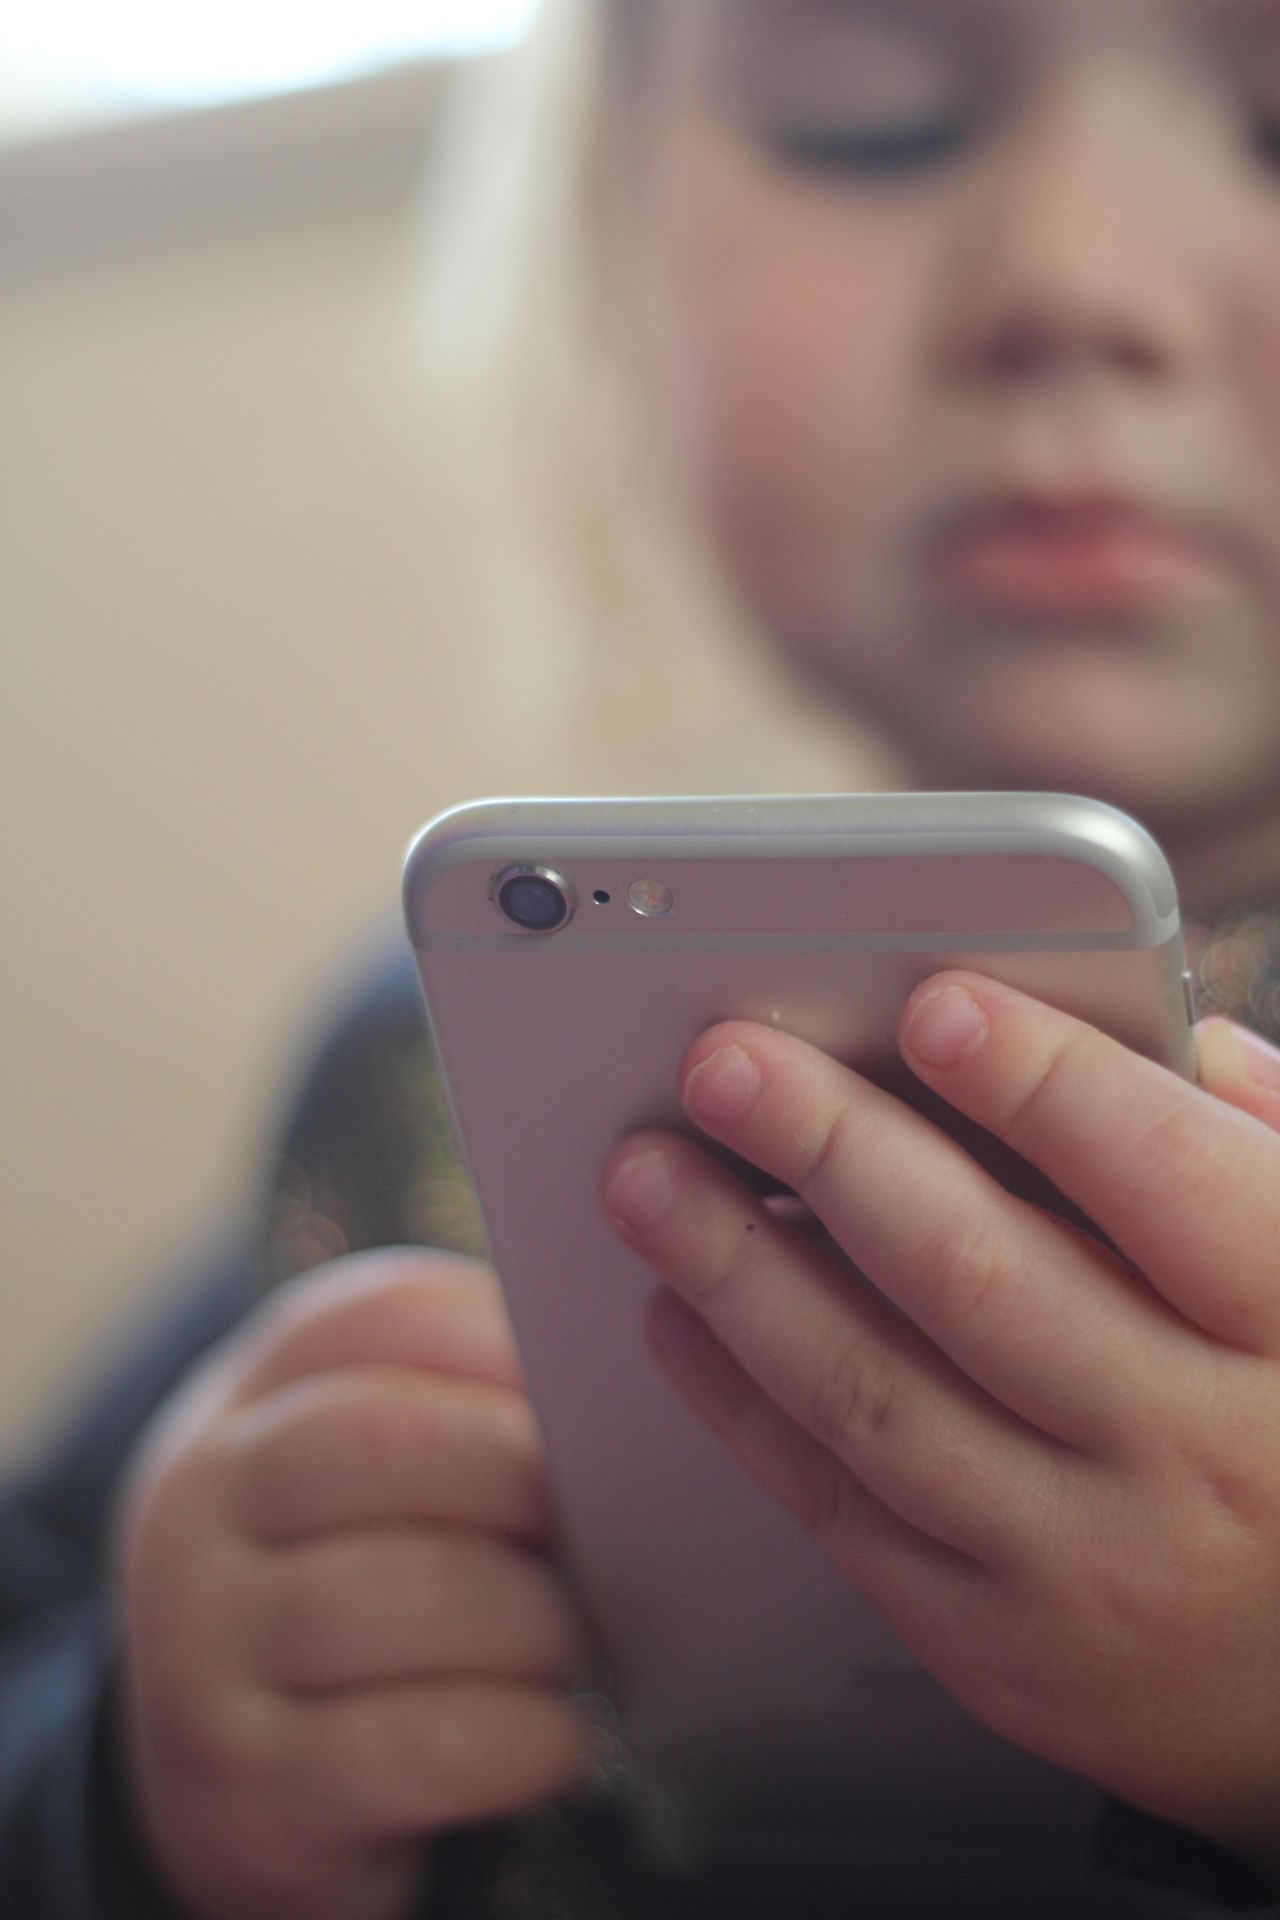 Child Phone Child With Phone Holding Kid With Iphone Kids App Kids Apps Kids With Phone Phone Danger Smart Phone Wireless Technology